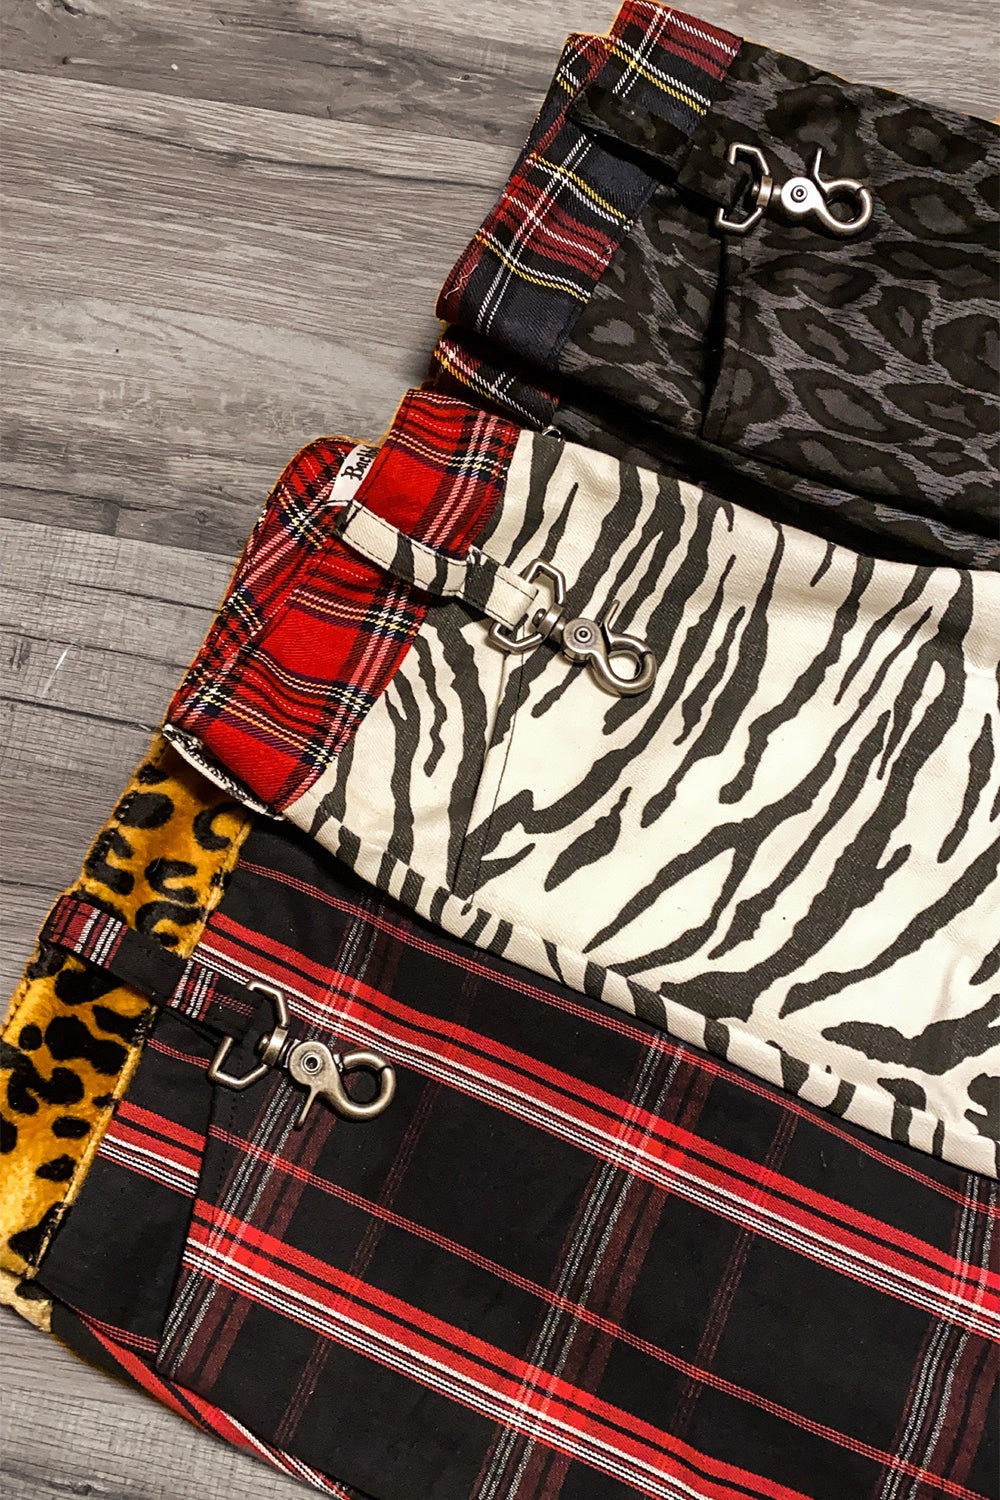 Trainspotting Cuffed Skinny Pants: Zebra/Plaid | Size 24 & 27 In Stock